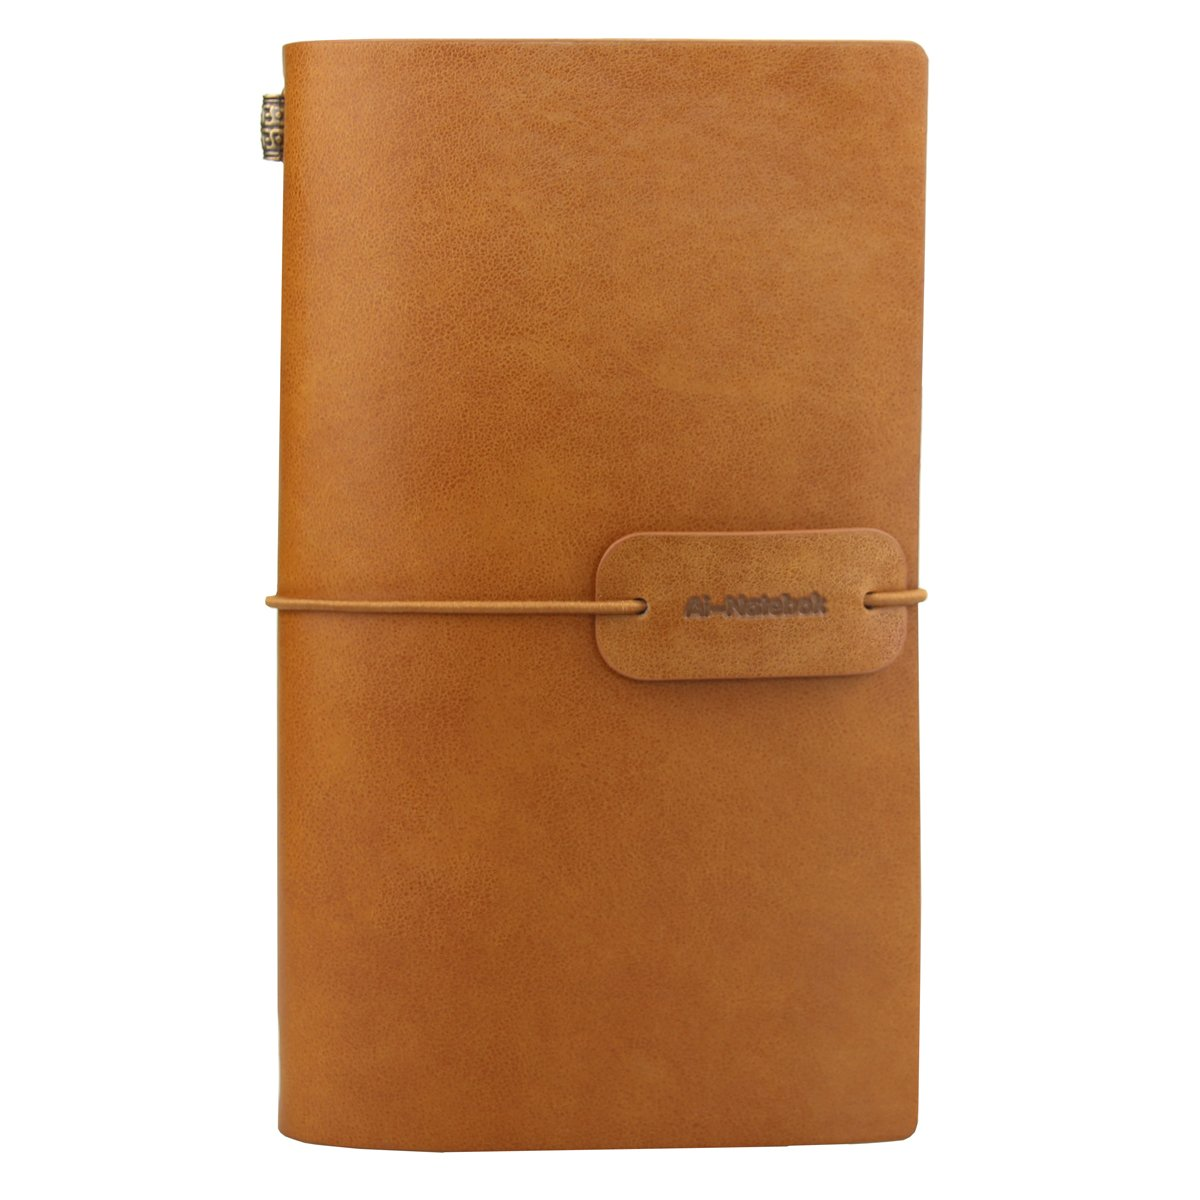 Refillable Travelers Notebook - Small Classic Writing Journal - Vintage Handmade Leather Note Book for Men and Women 4.72 X 7.87 inch from ai-natebok (Light Brown)